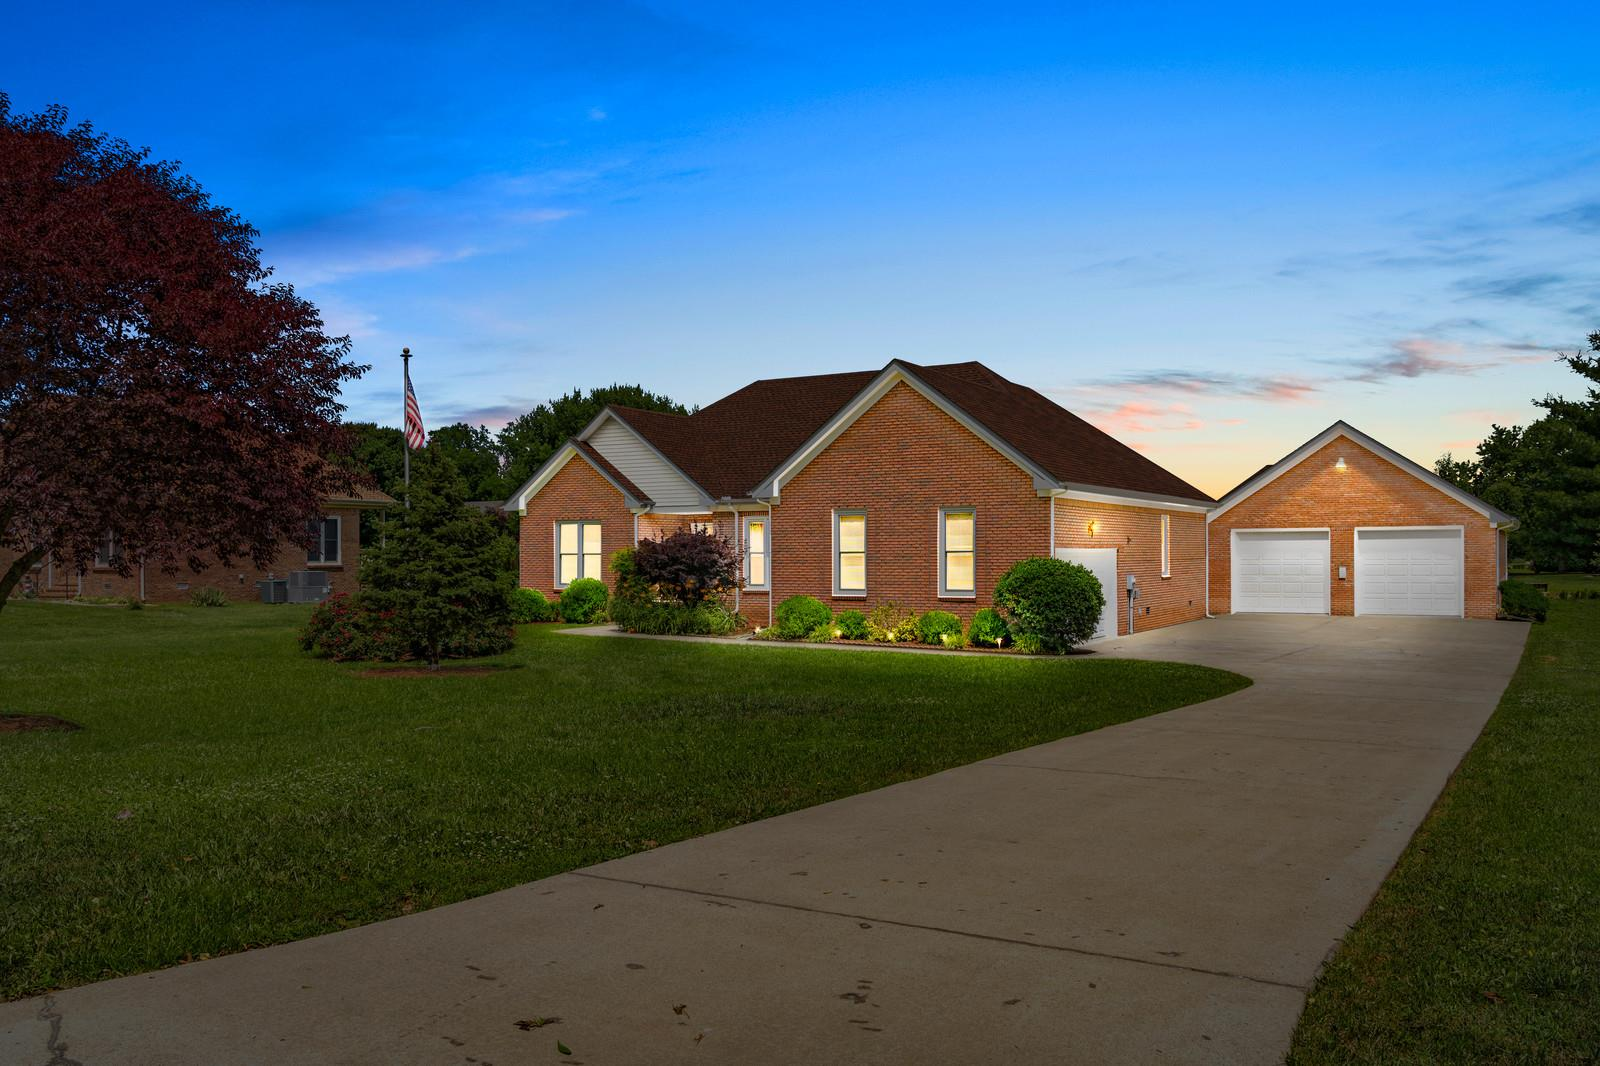 Fort Campbell Real Estate & Homes